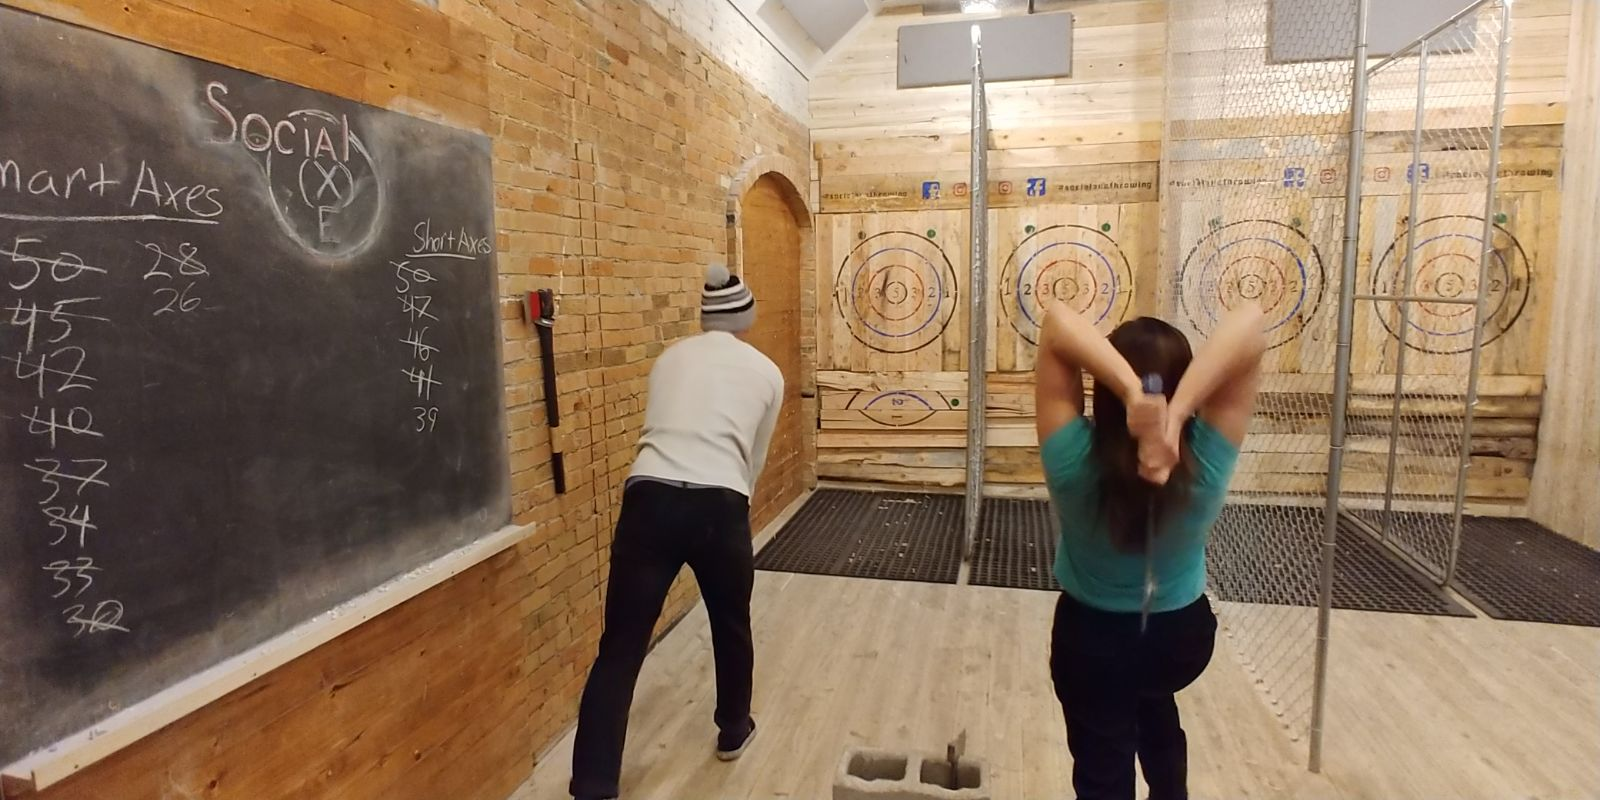 Fun things to do in Ogden after a day on the slopes includes a friendly game of axe throwing.